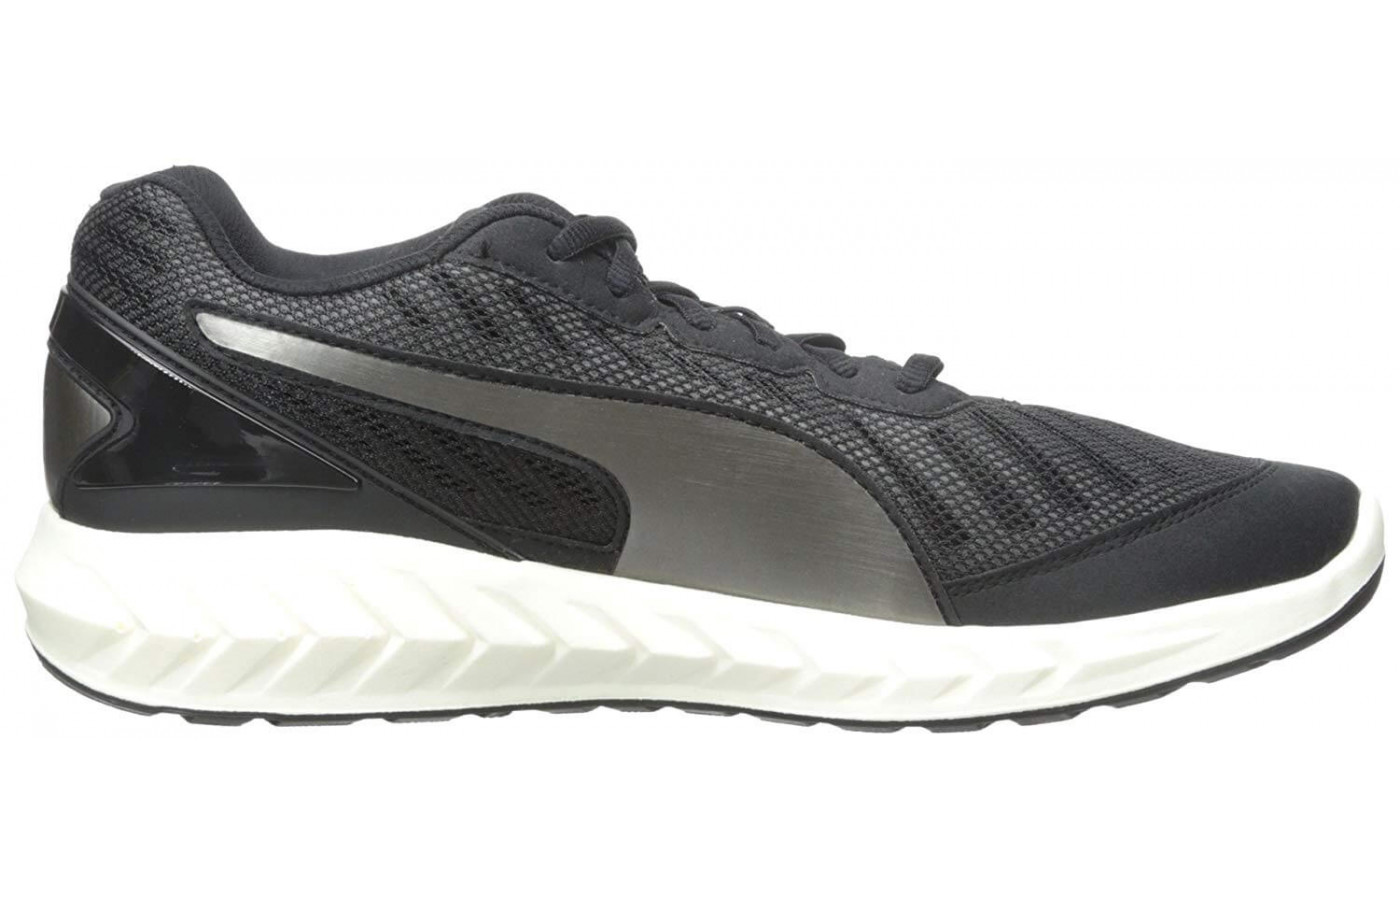 The midsole unit used in this shoe is the Ignite Midsole foam.